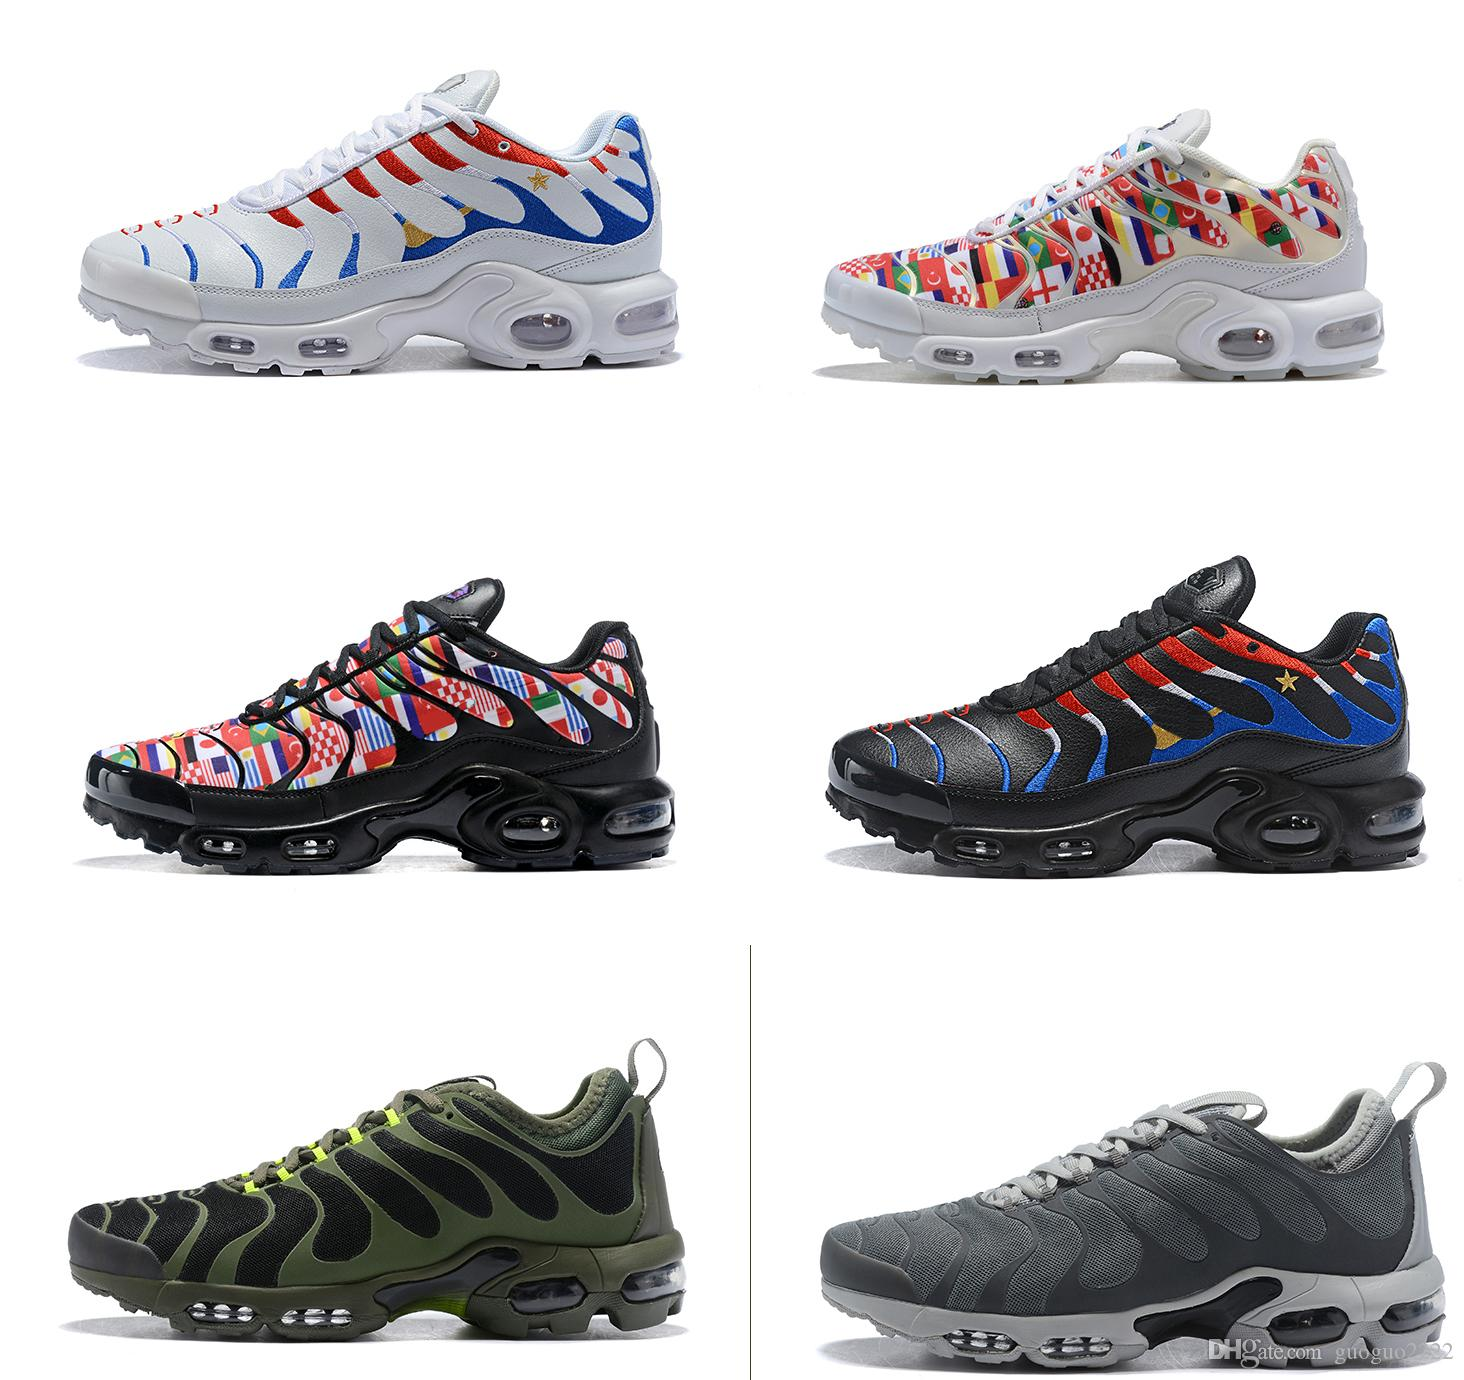 9c1277dfeaaa3 New Arrive PLUS TN Men Women Casual Shoes TN PLUS TE World Cup ...